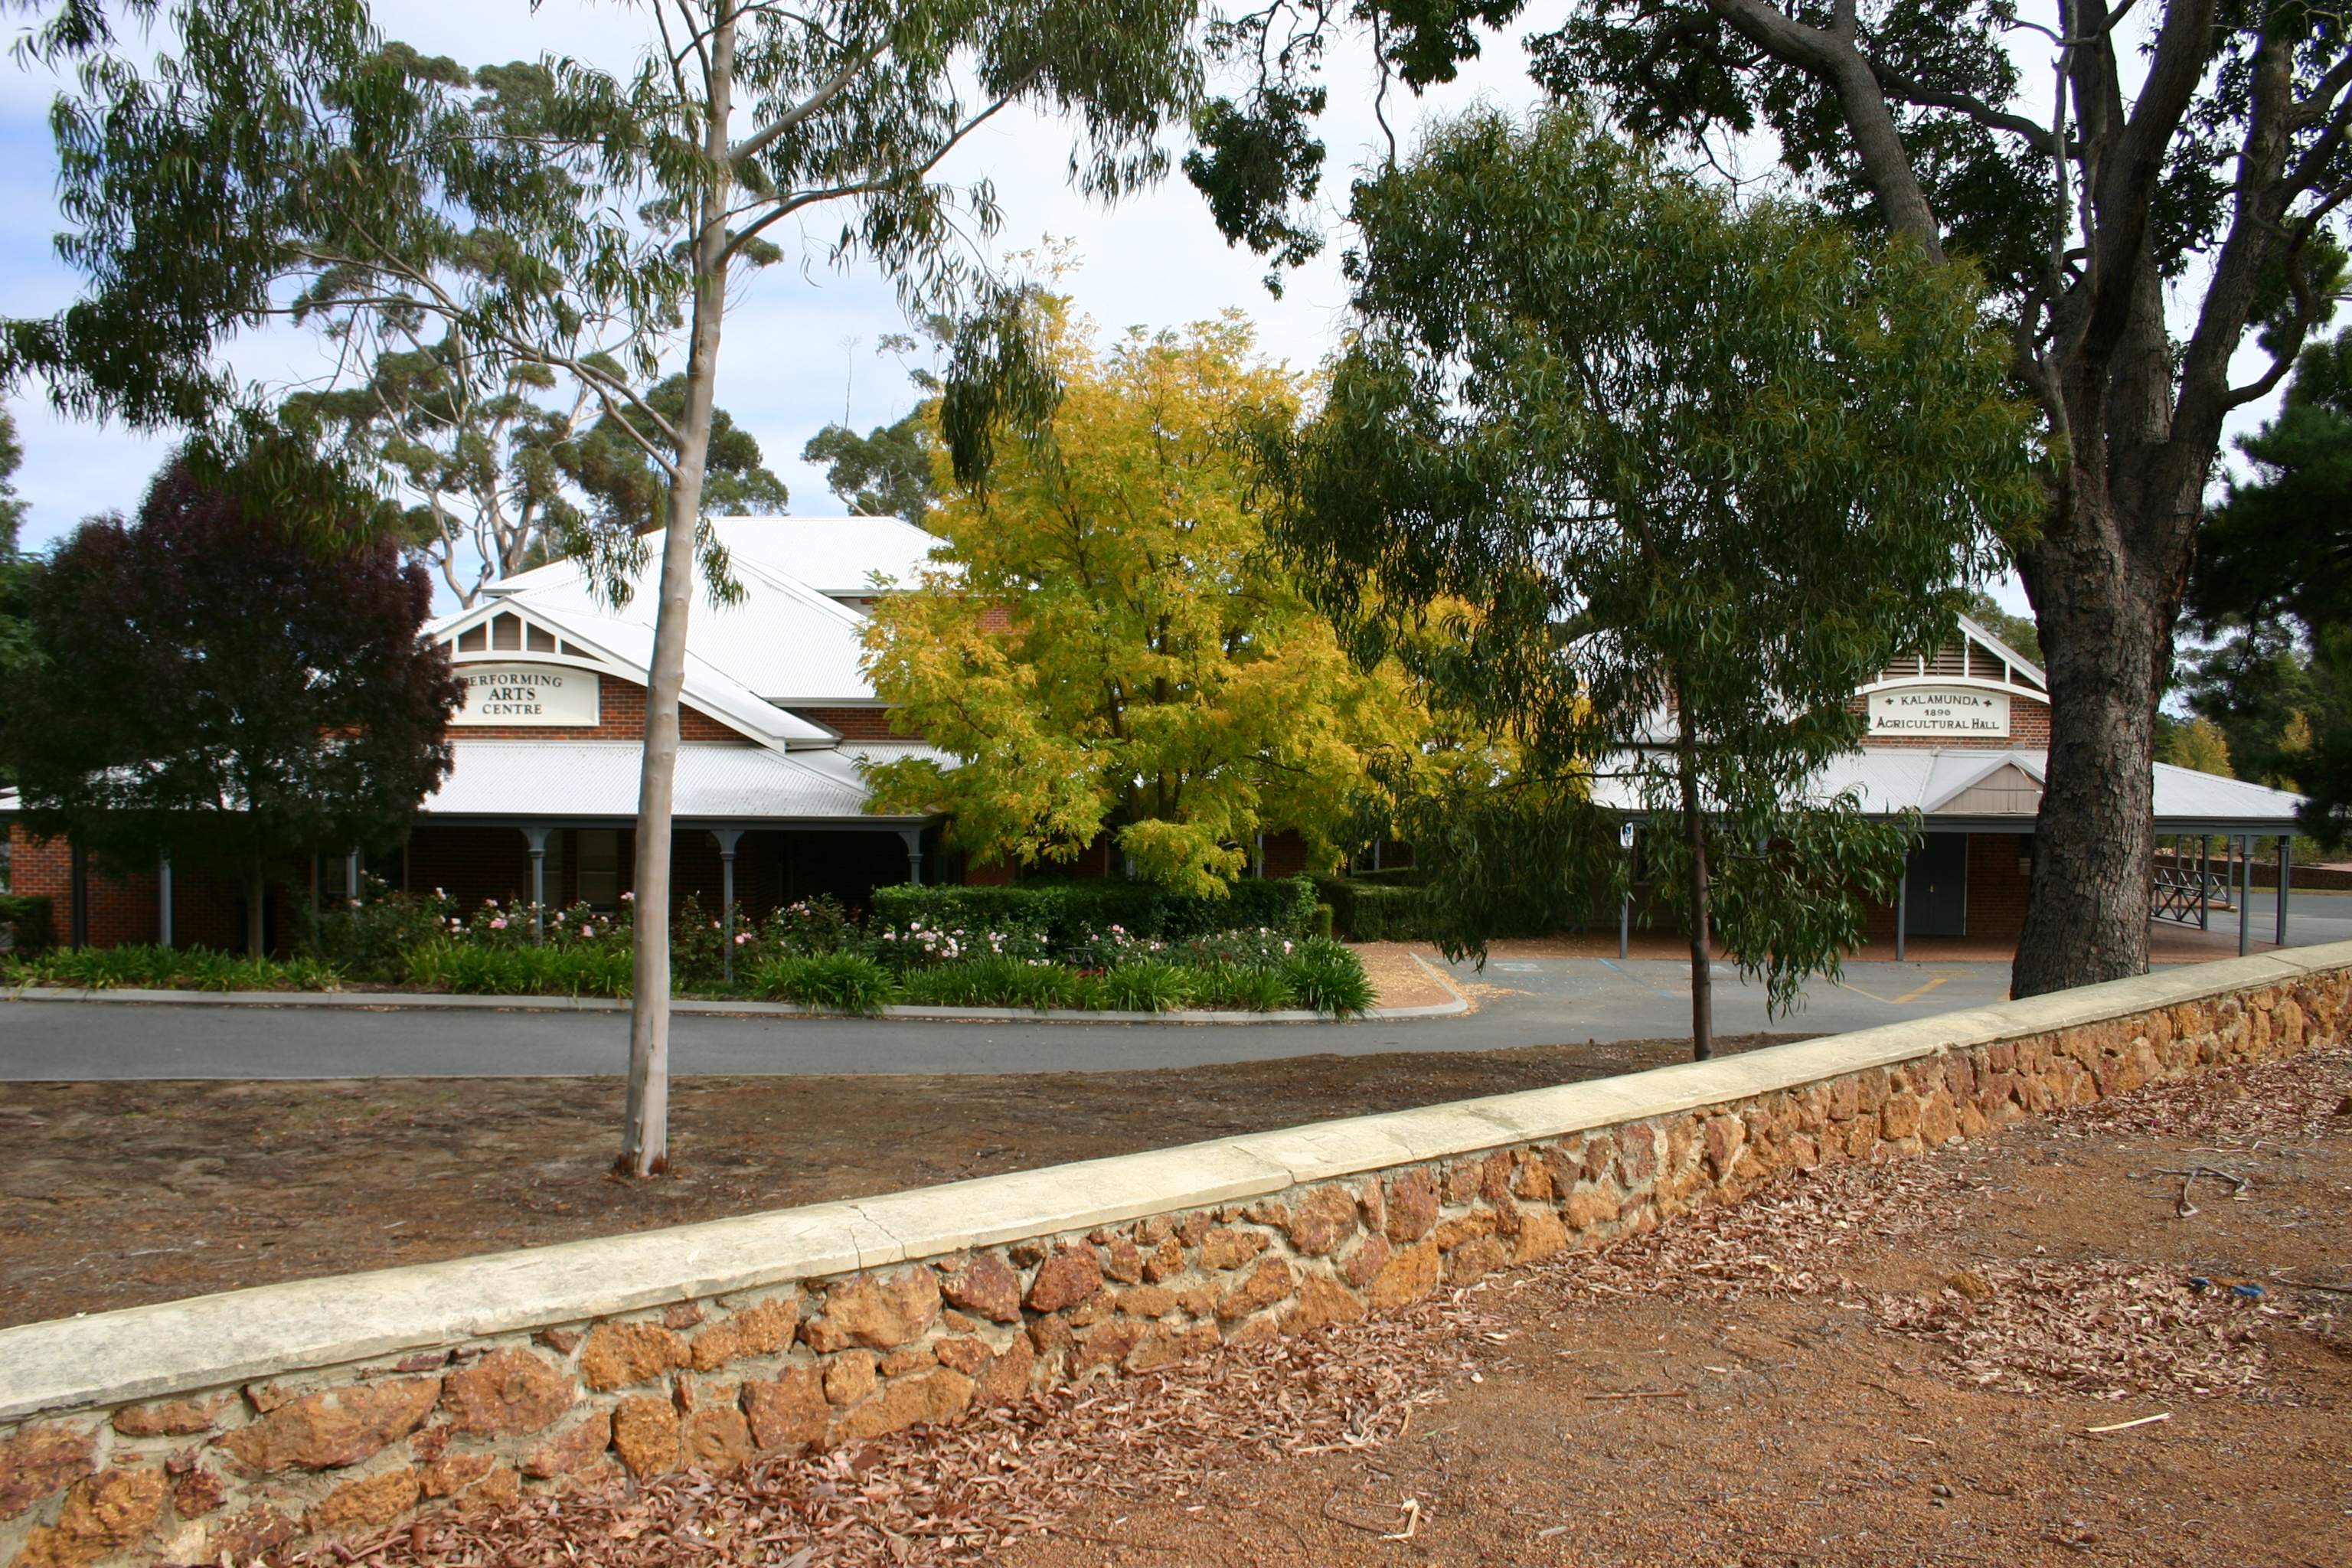 Kalamunda Performing Arts Centre